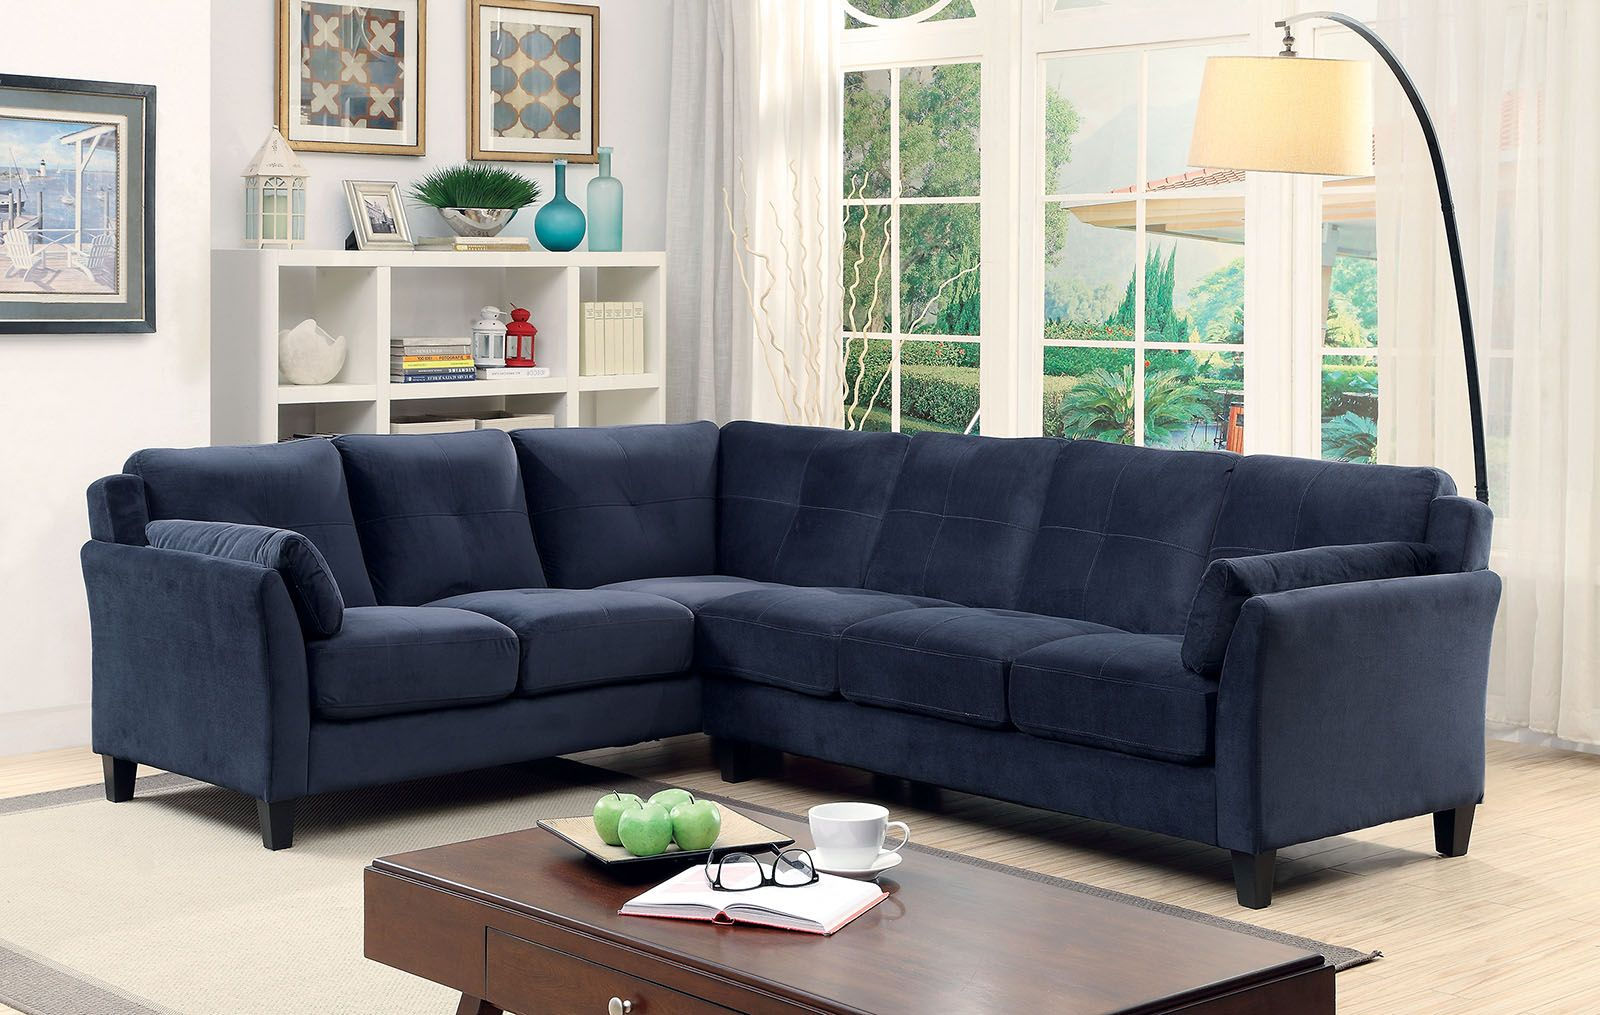 Peever 6368NV Navy Blue Contemporary Sectional Sofa ...